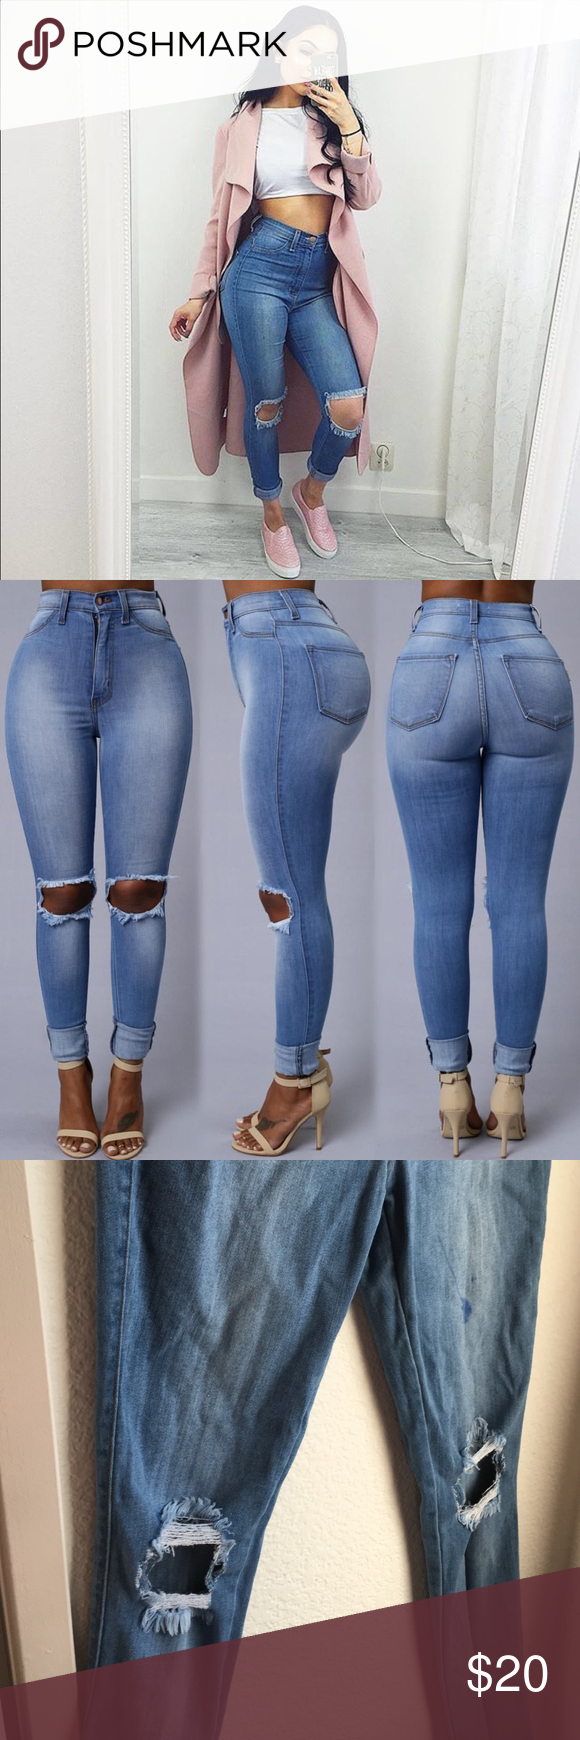 ba34937cb0f Ripped knee jeans These are the very stylish jeans from fashion nova ...